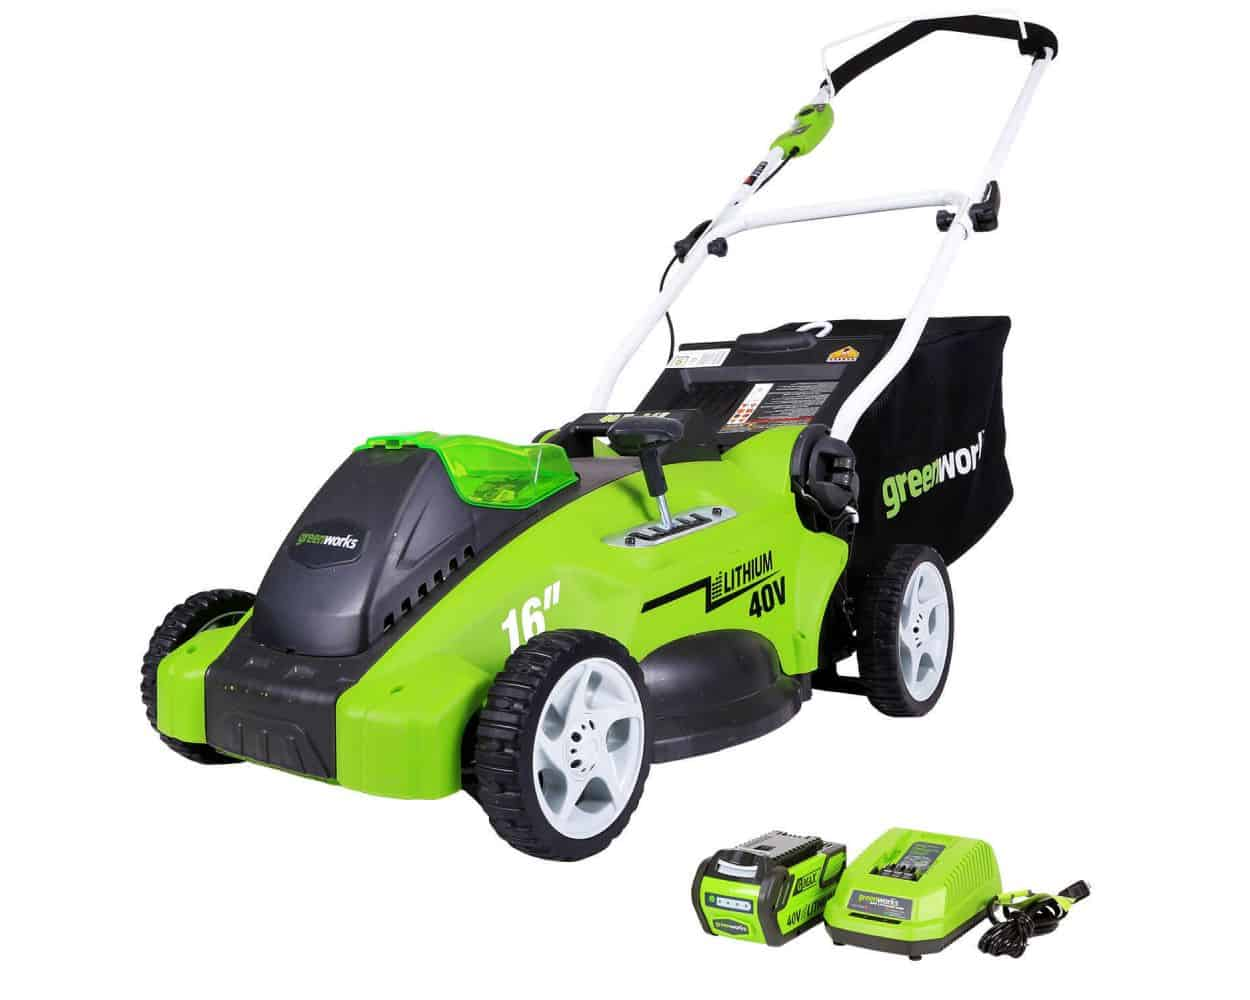 Greenworks G-MAX 40V 16'' Cordless Lawn Mower- Best lawn mower for small lawn